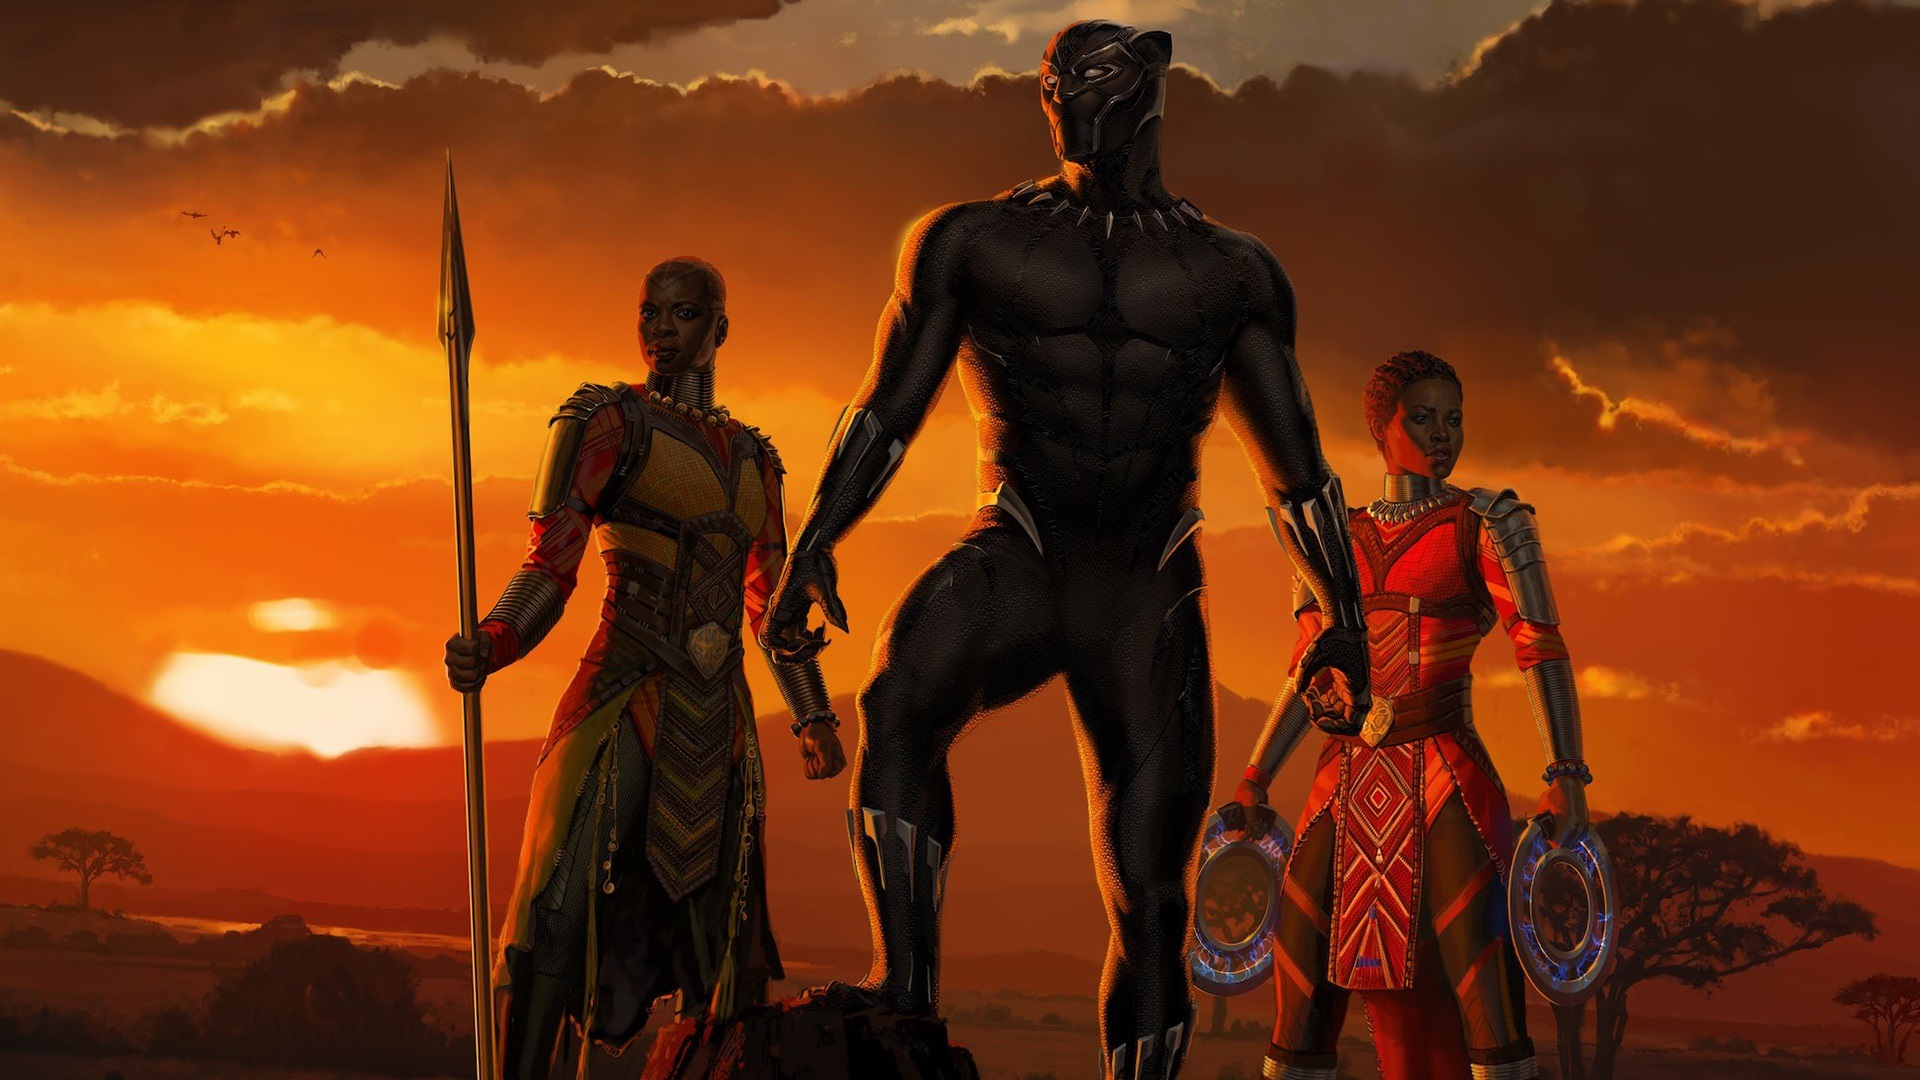 Wallpaper Black Panther 2018 Hd Movies 12198: Wallpaper Black Panther, Africa, 2018 Movie 1920x1080 Full